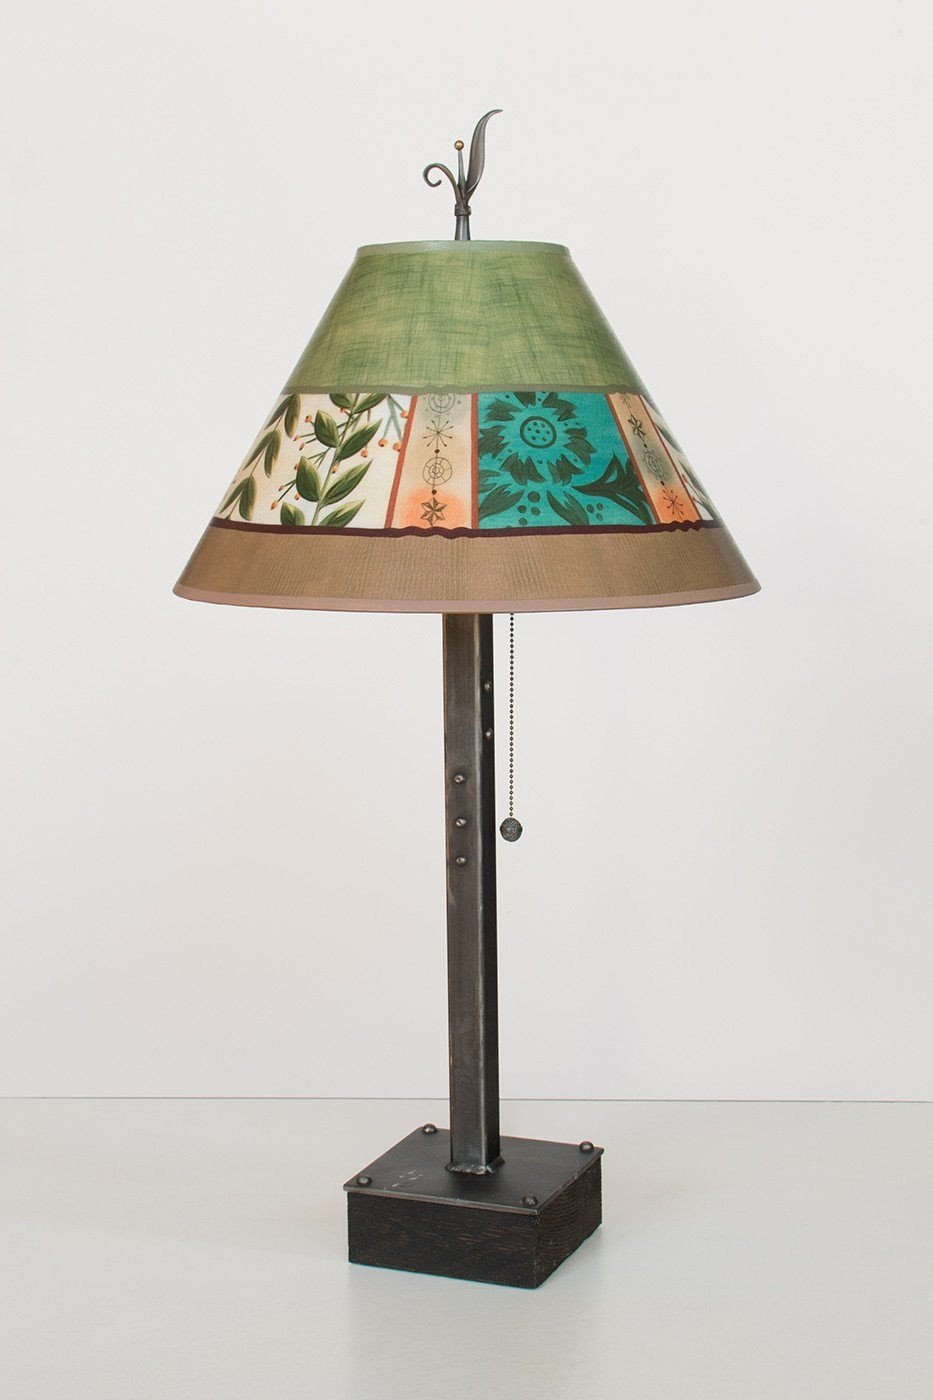 Steel Table Lamp on Wood with Medium Conical Shade in Spring Medley Apple - Lit